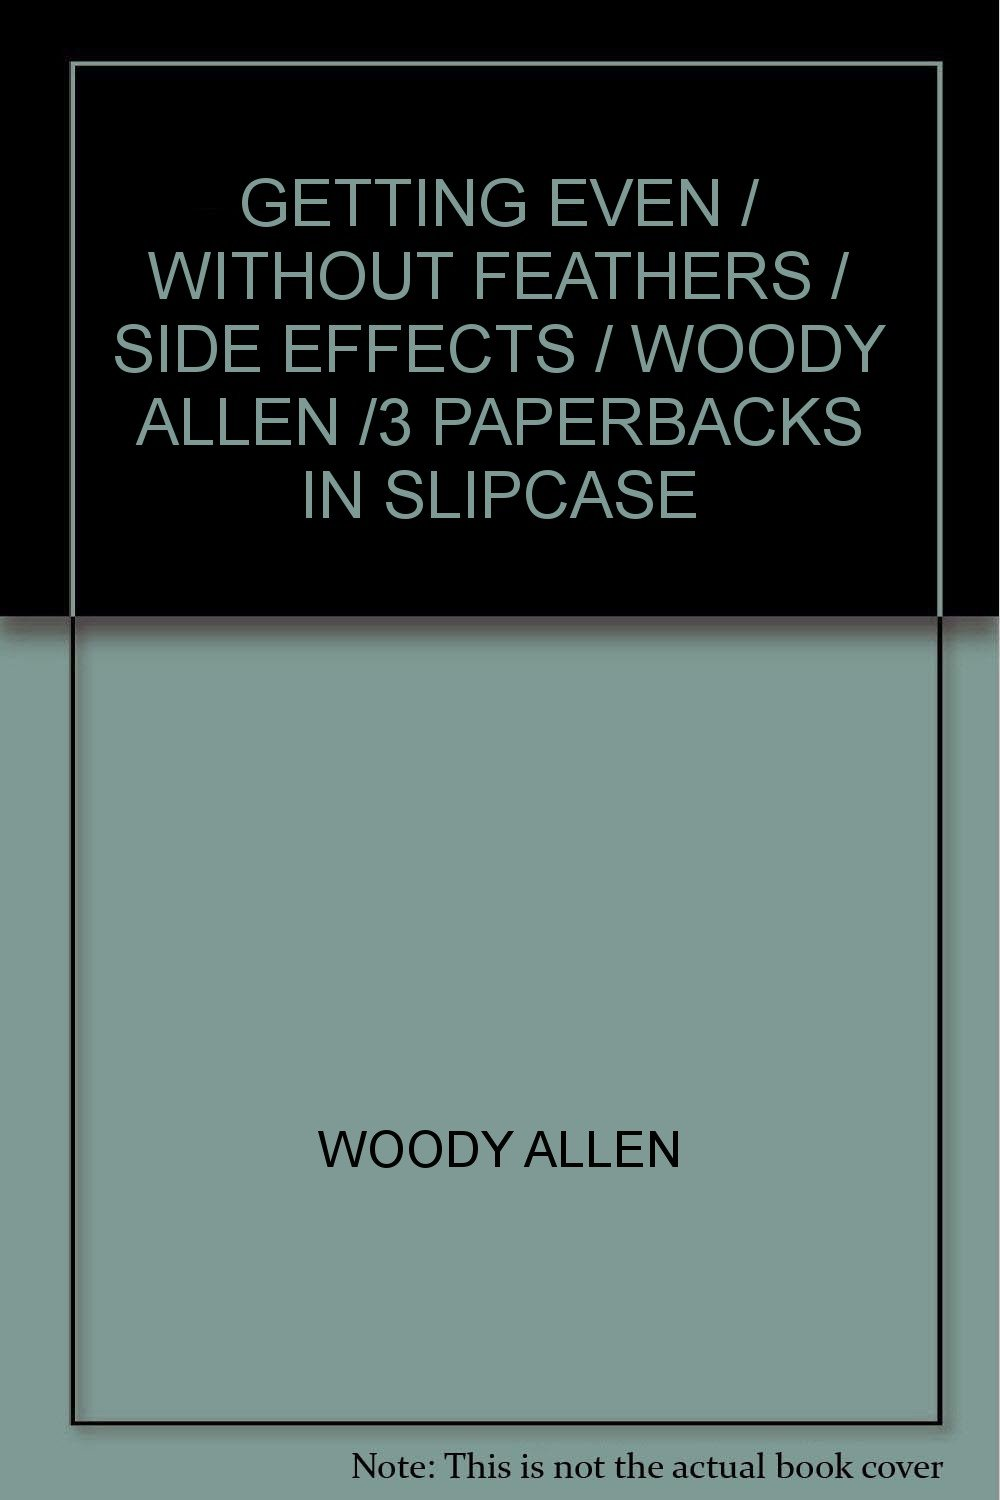 GETTING EVEN / WITHOUT FEATHERS / SIDE EFFECTS / WOODY ALLEN /3 PAPERBACKS  IN SLIPCASE: Woody Allen: Amazon.com: Books